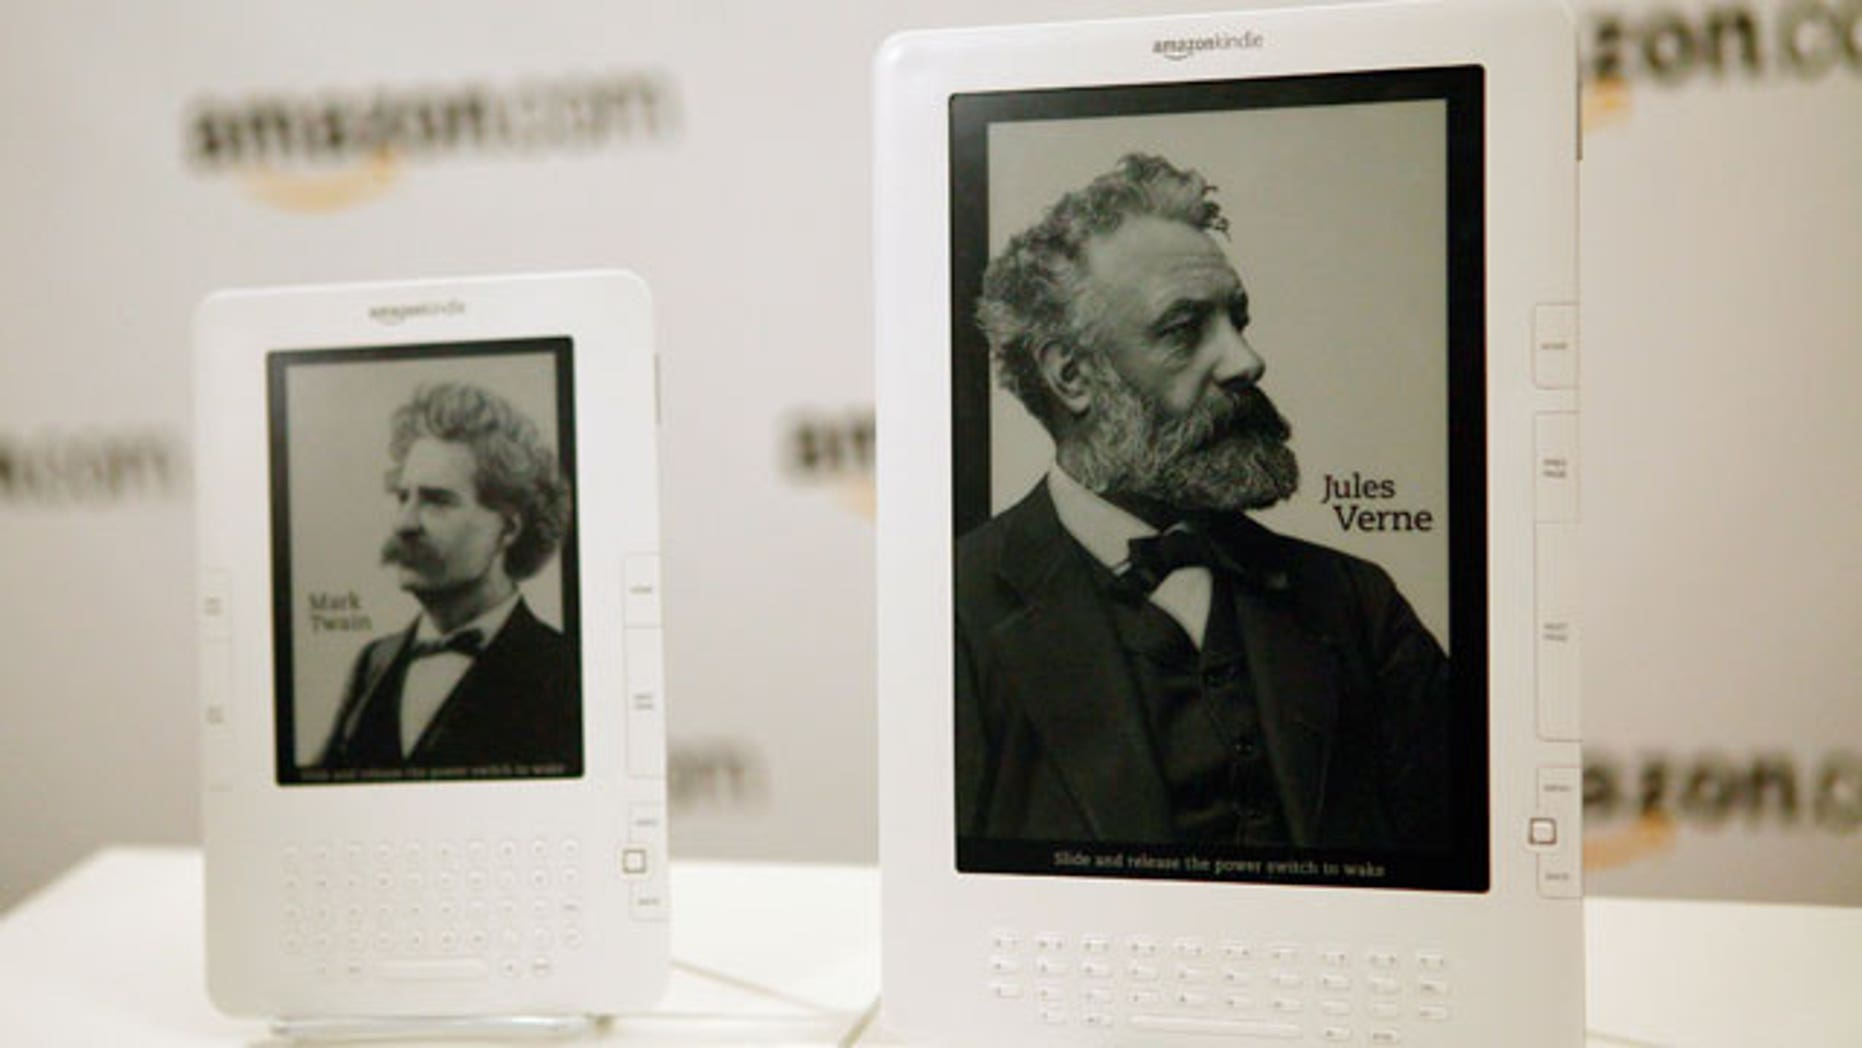 Two models of the Amazon Kindle stand side by side on display.